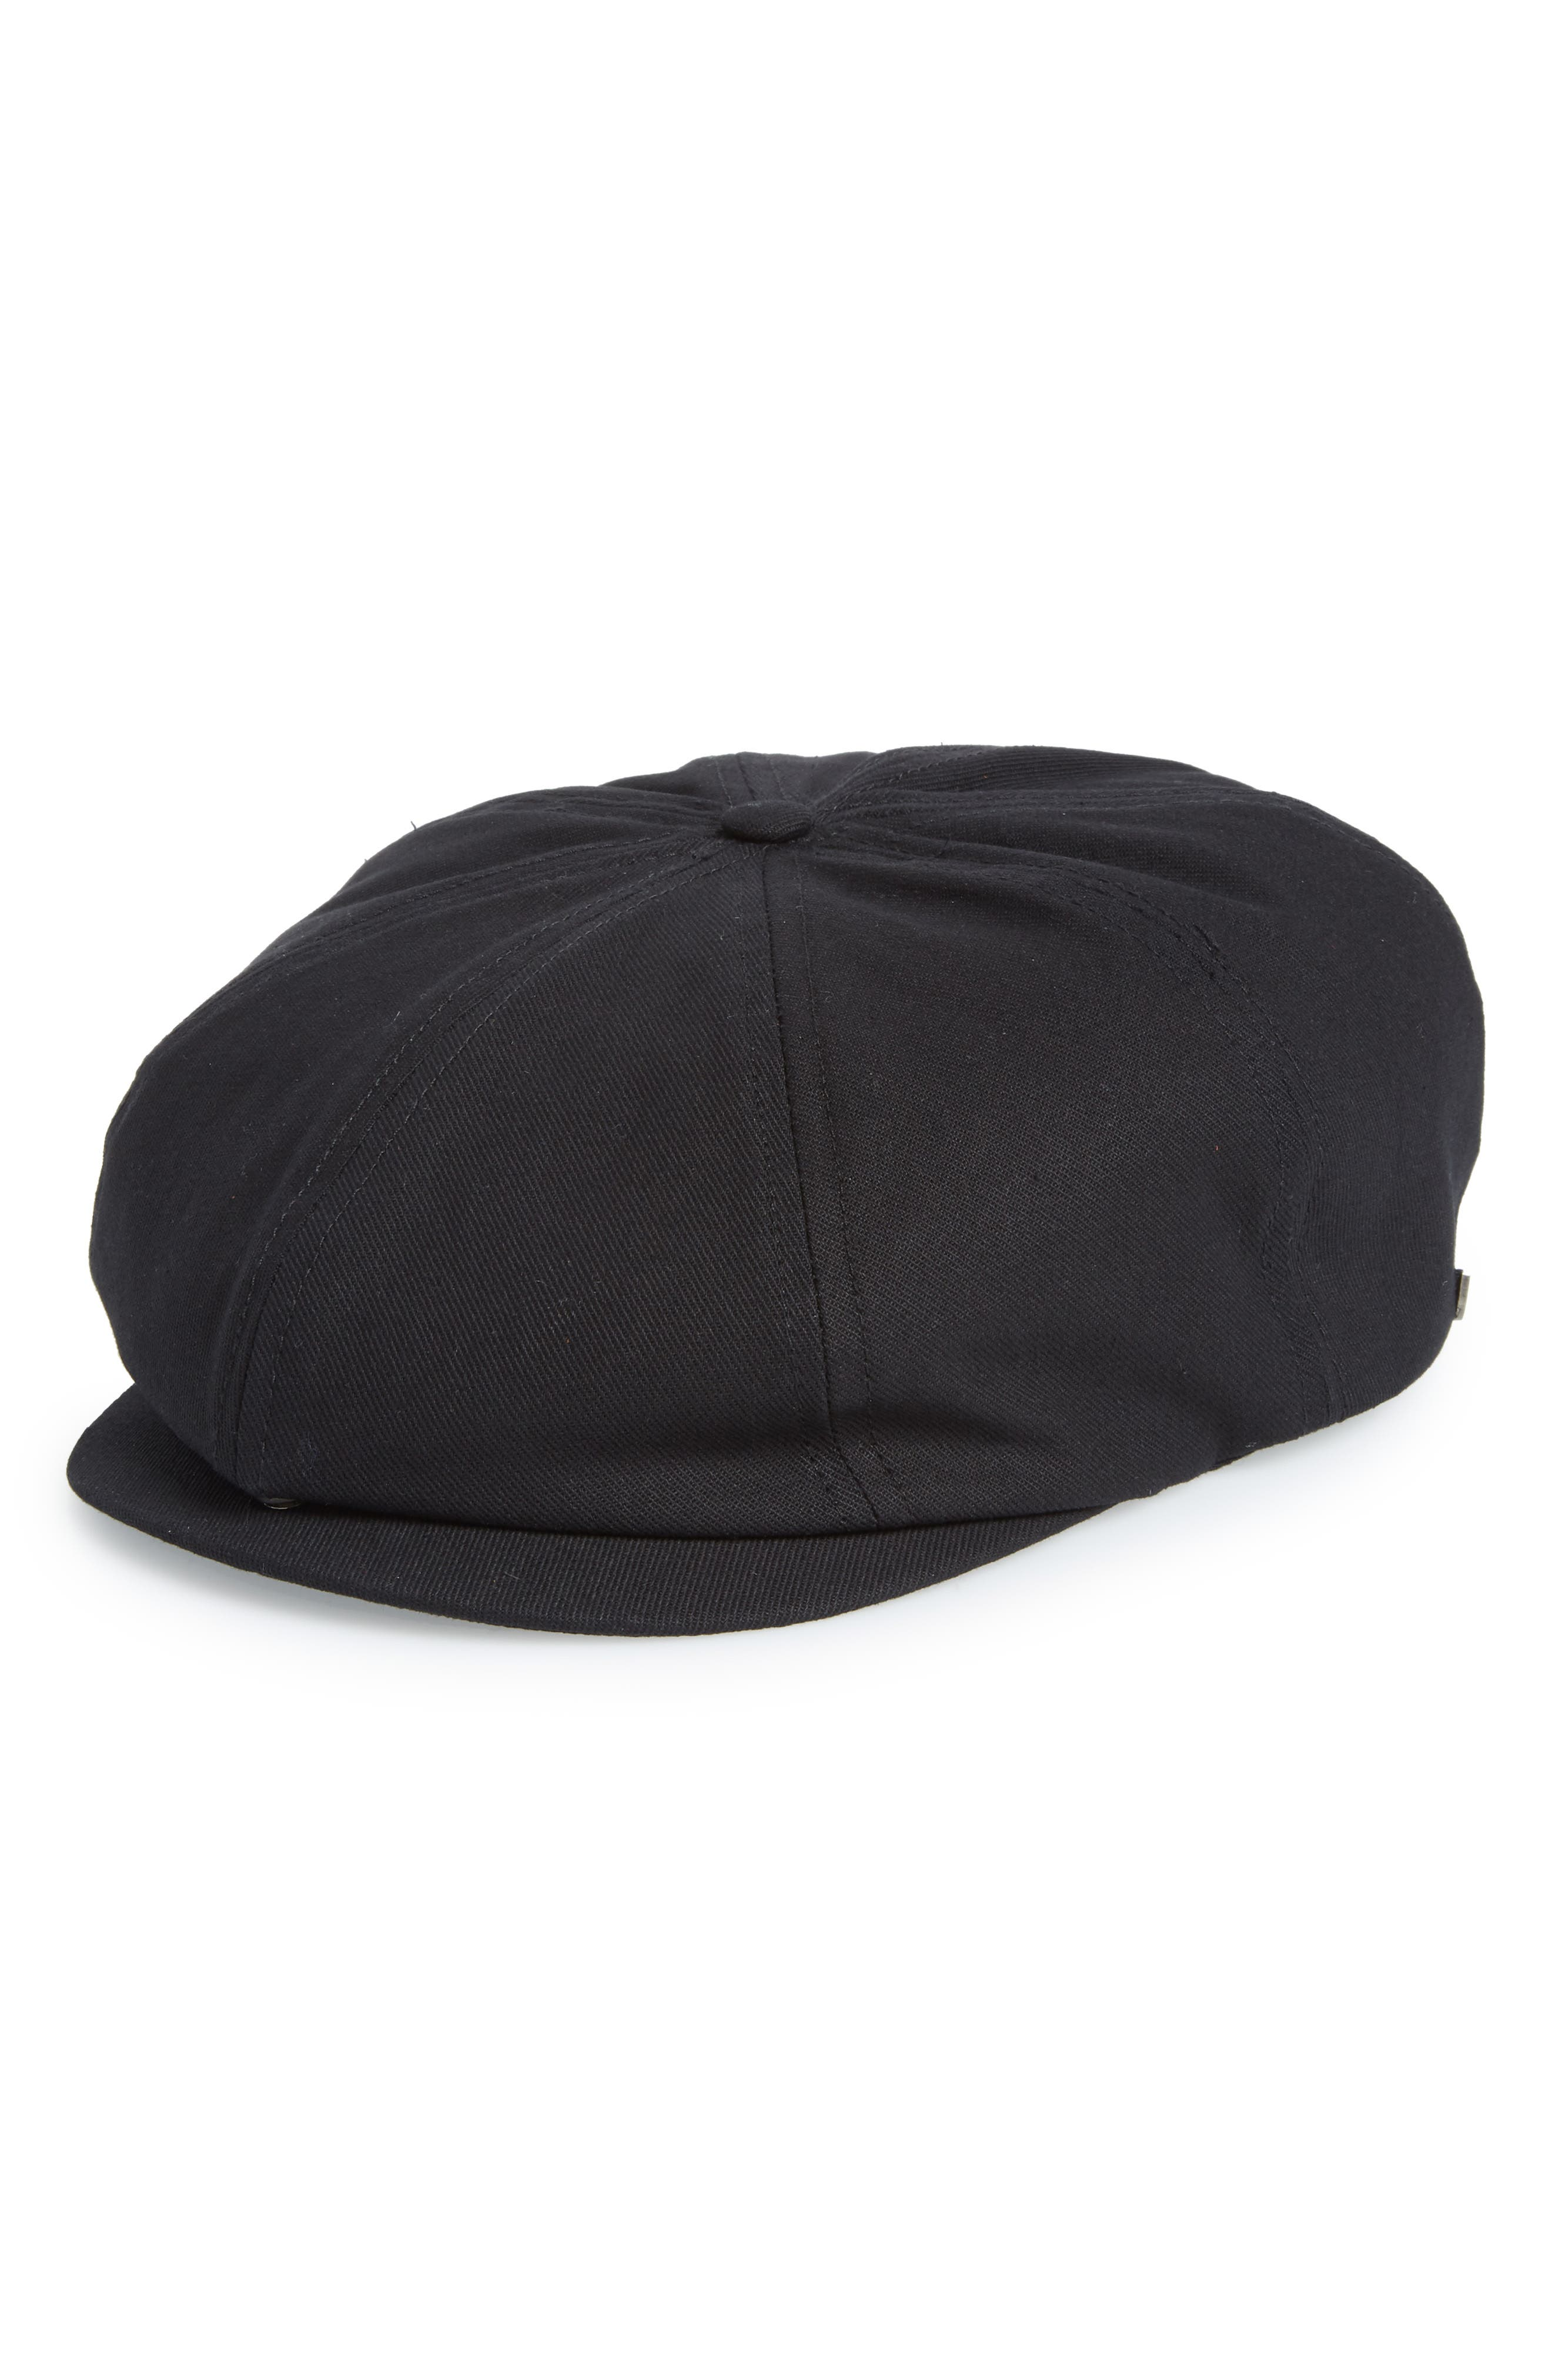 Brood Snap Brim Cap,                             Main thumbnail 1, color,                             001